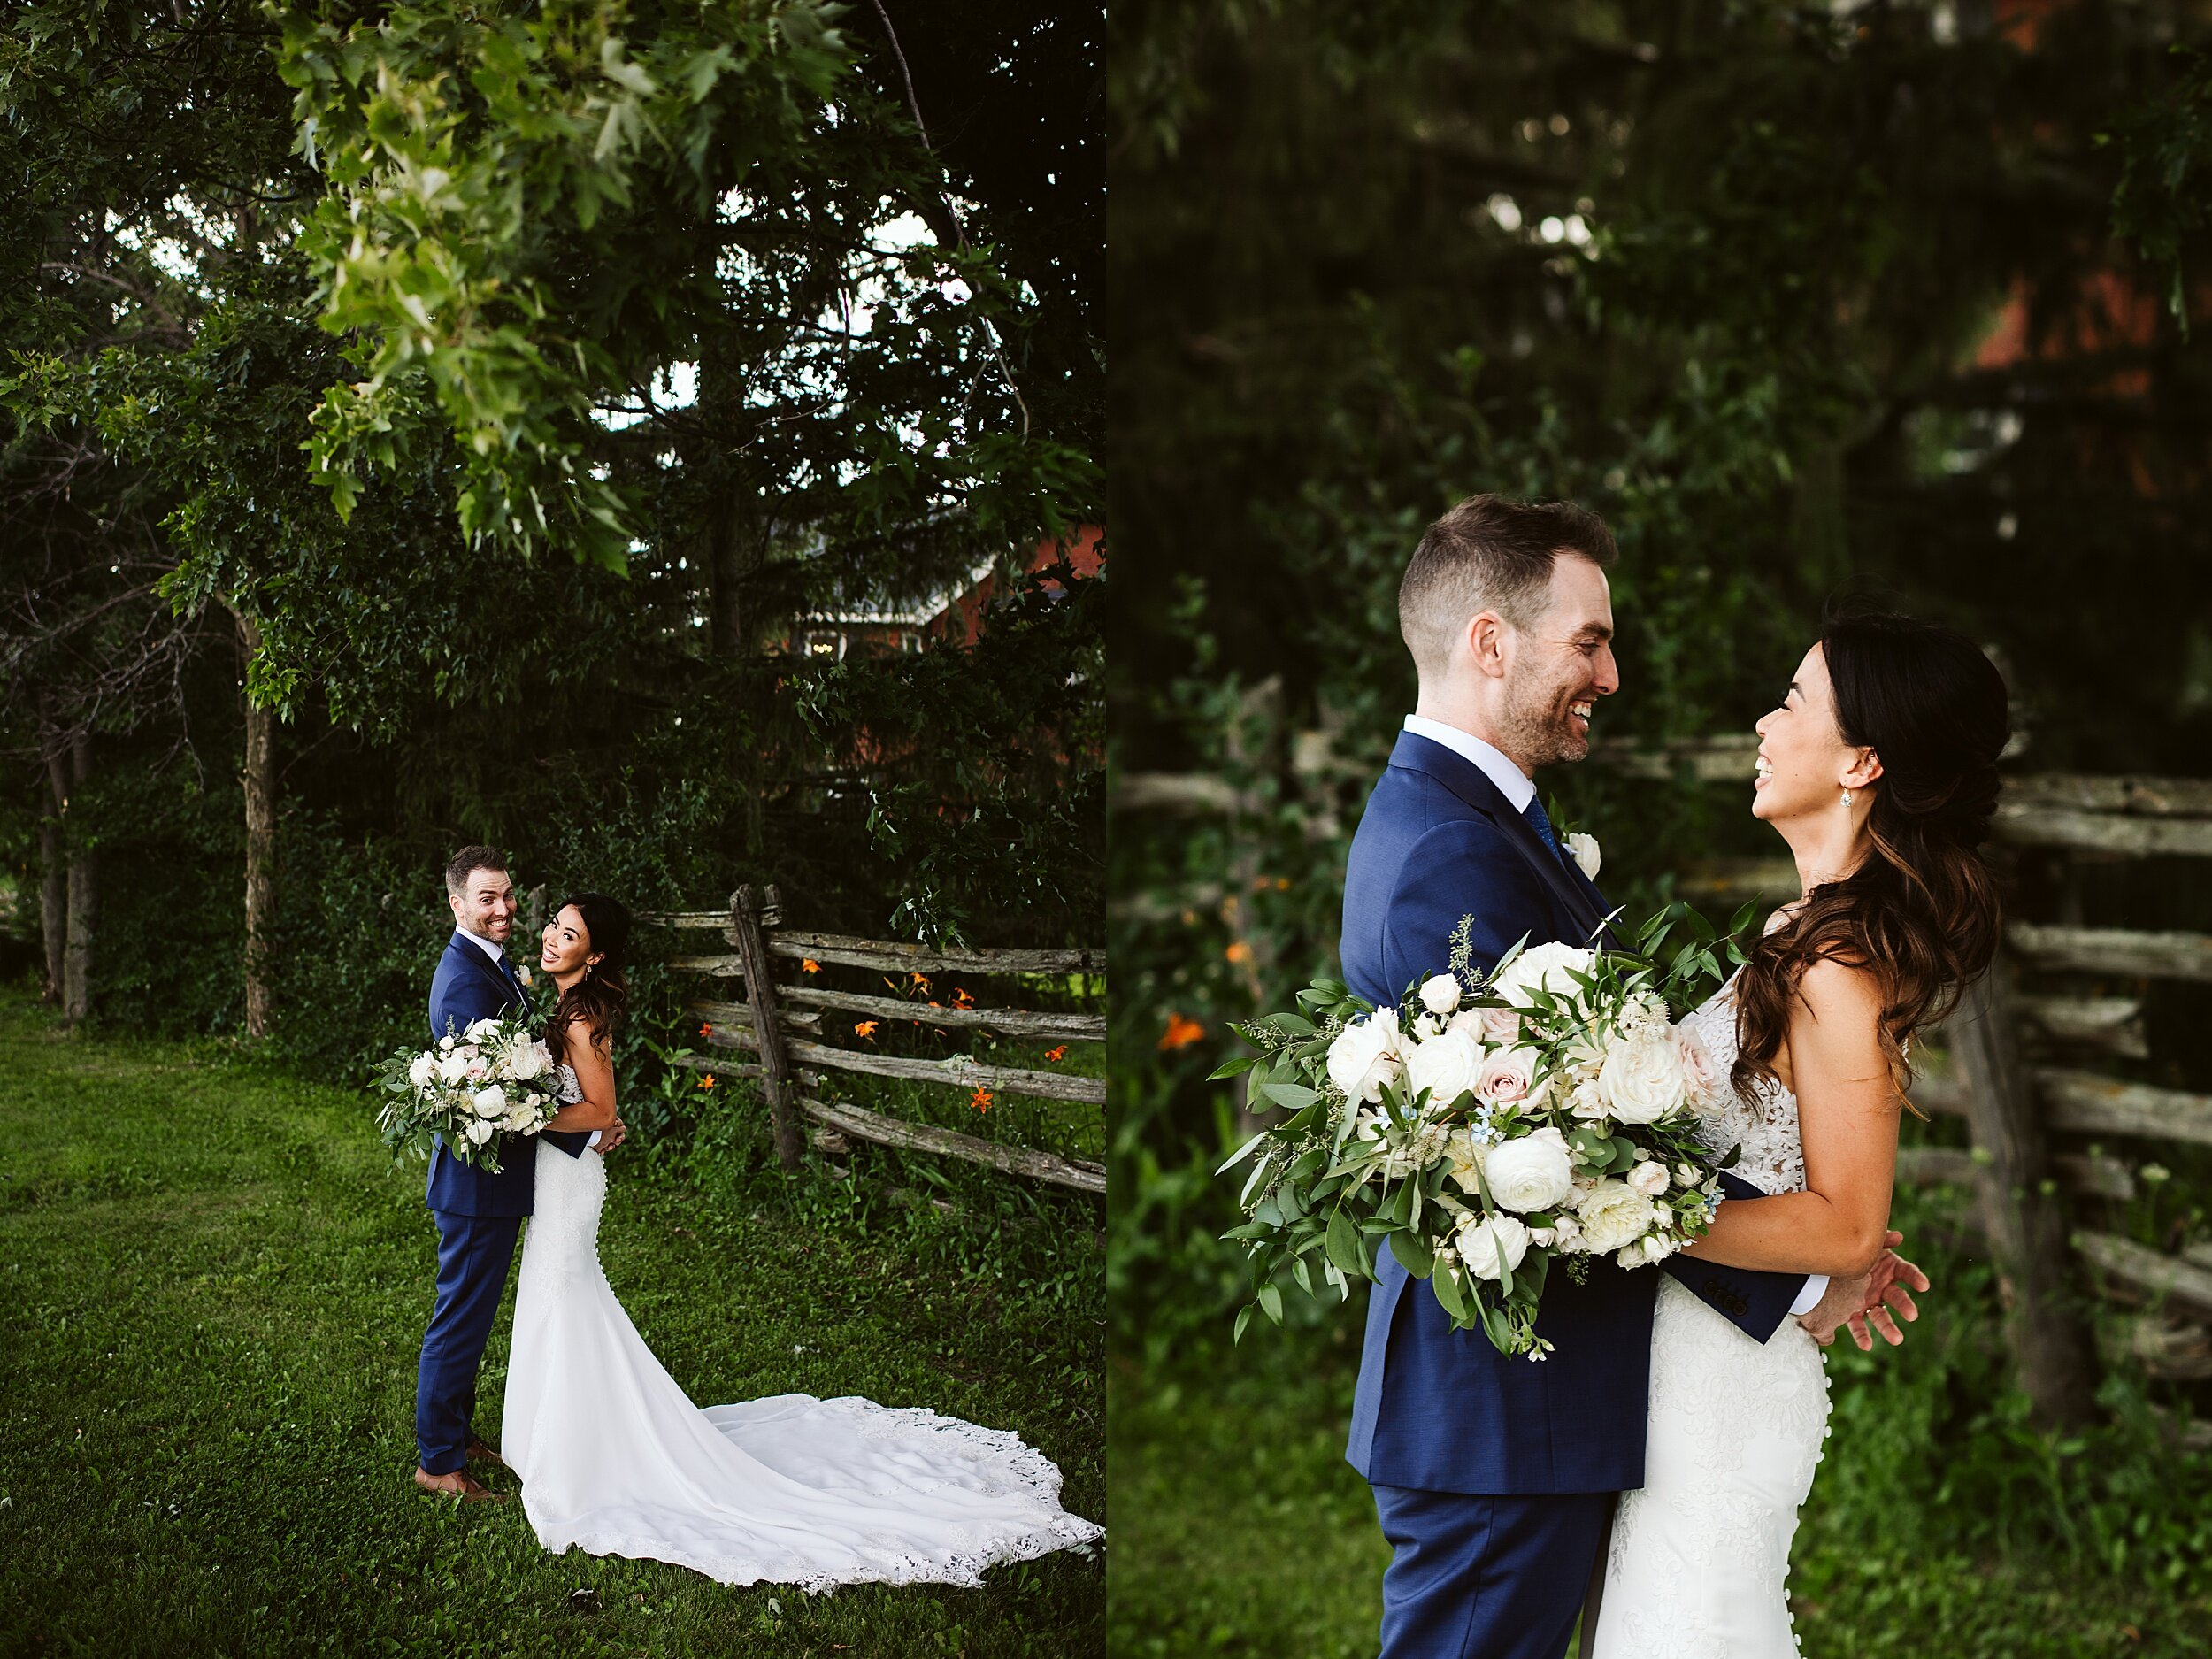 Glen_Drummon_Farm_Wedding_Toronto_Photographers_Fox_Photography_Dyments_0048.jpg